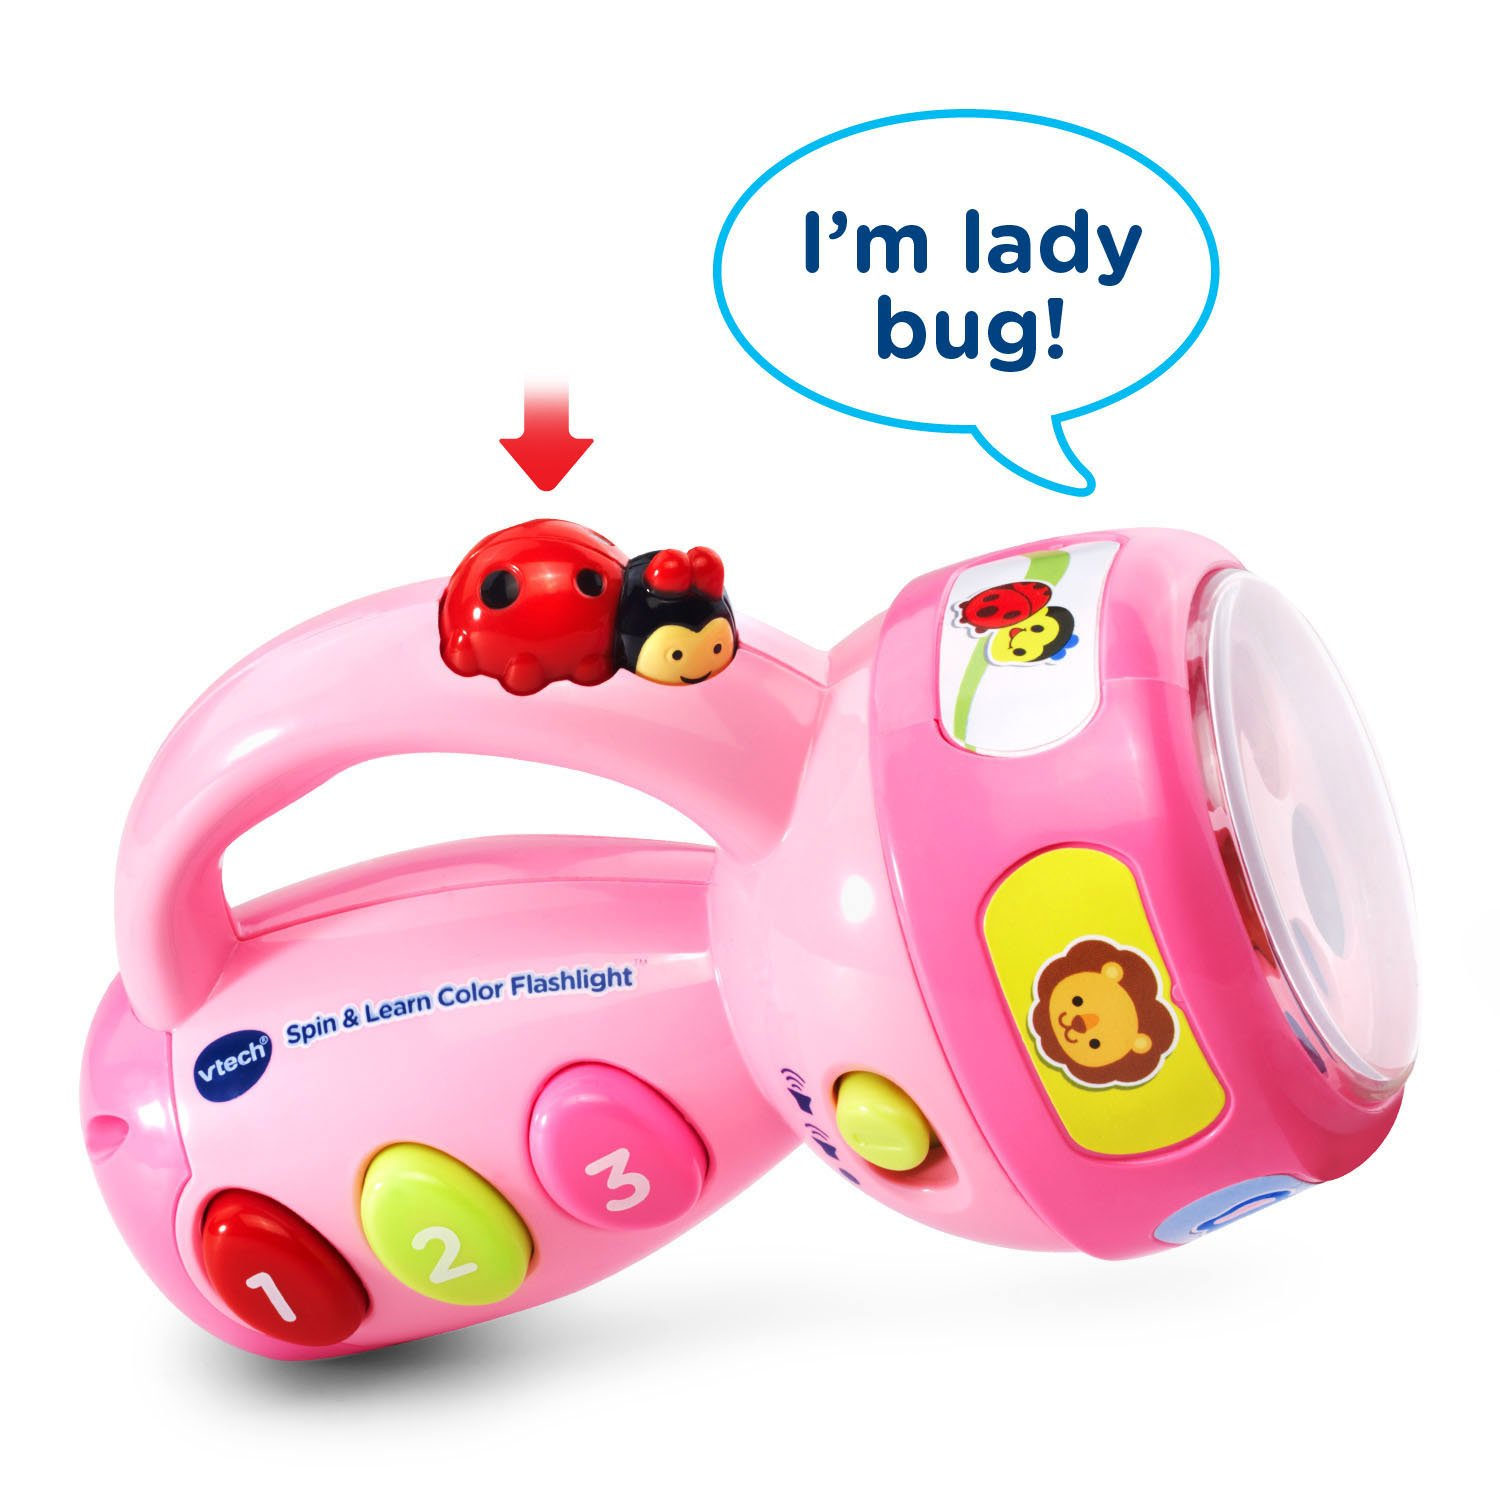 VTech Spin and Learn Color Flashlight Amazon Exclusive, Pink by VTech (Image #3)